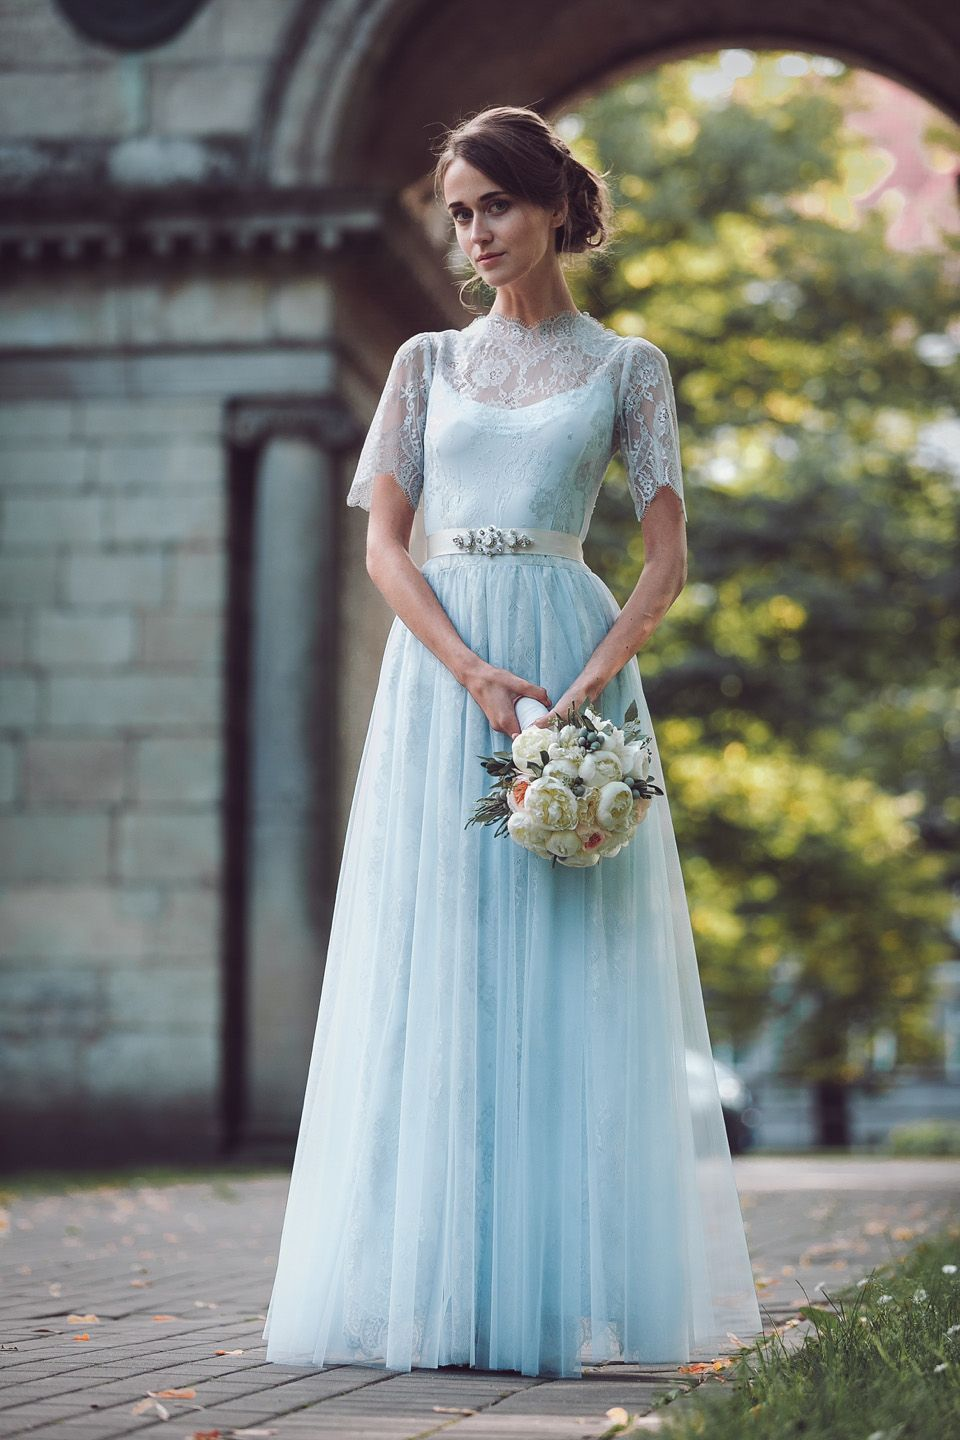 Rhapsody In Blue Pale Wedding Dresses By Katya Shehurina